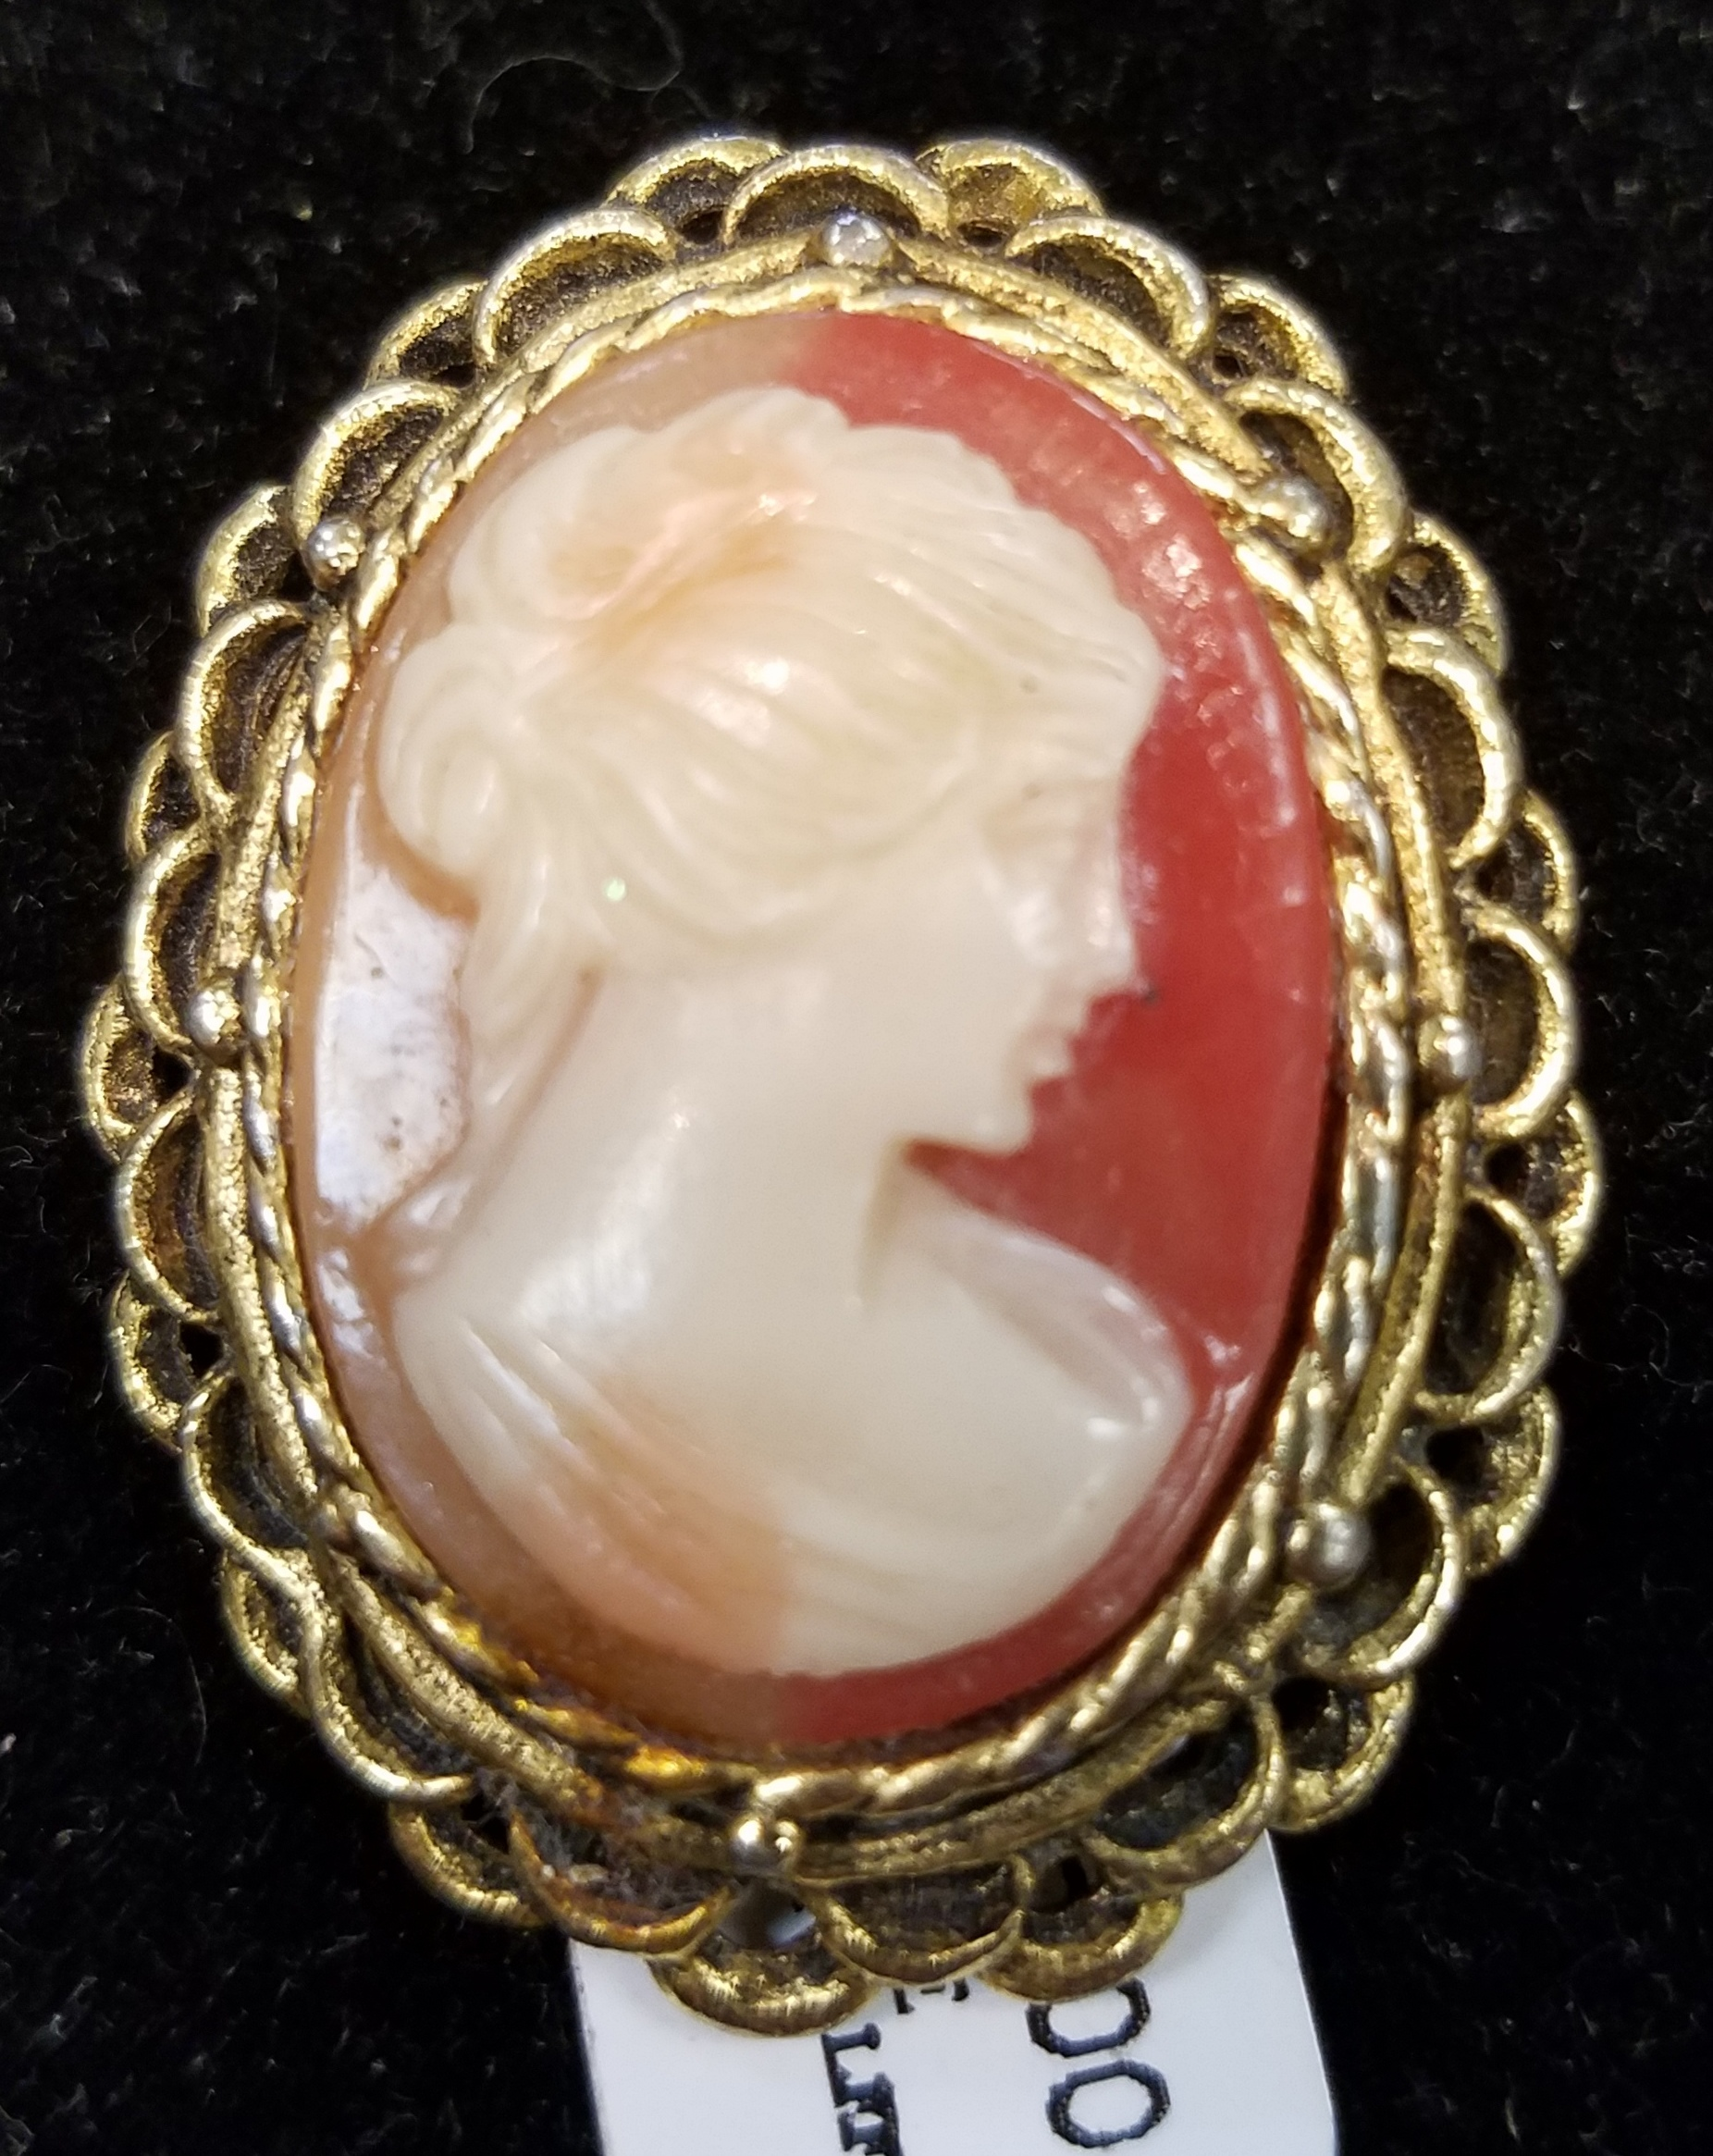 JEWELRY: GOLD PLATE  CAMEO FACING LEFT